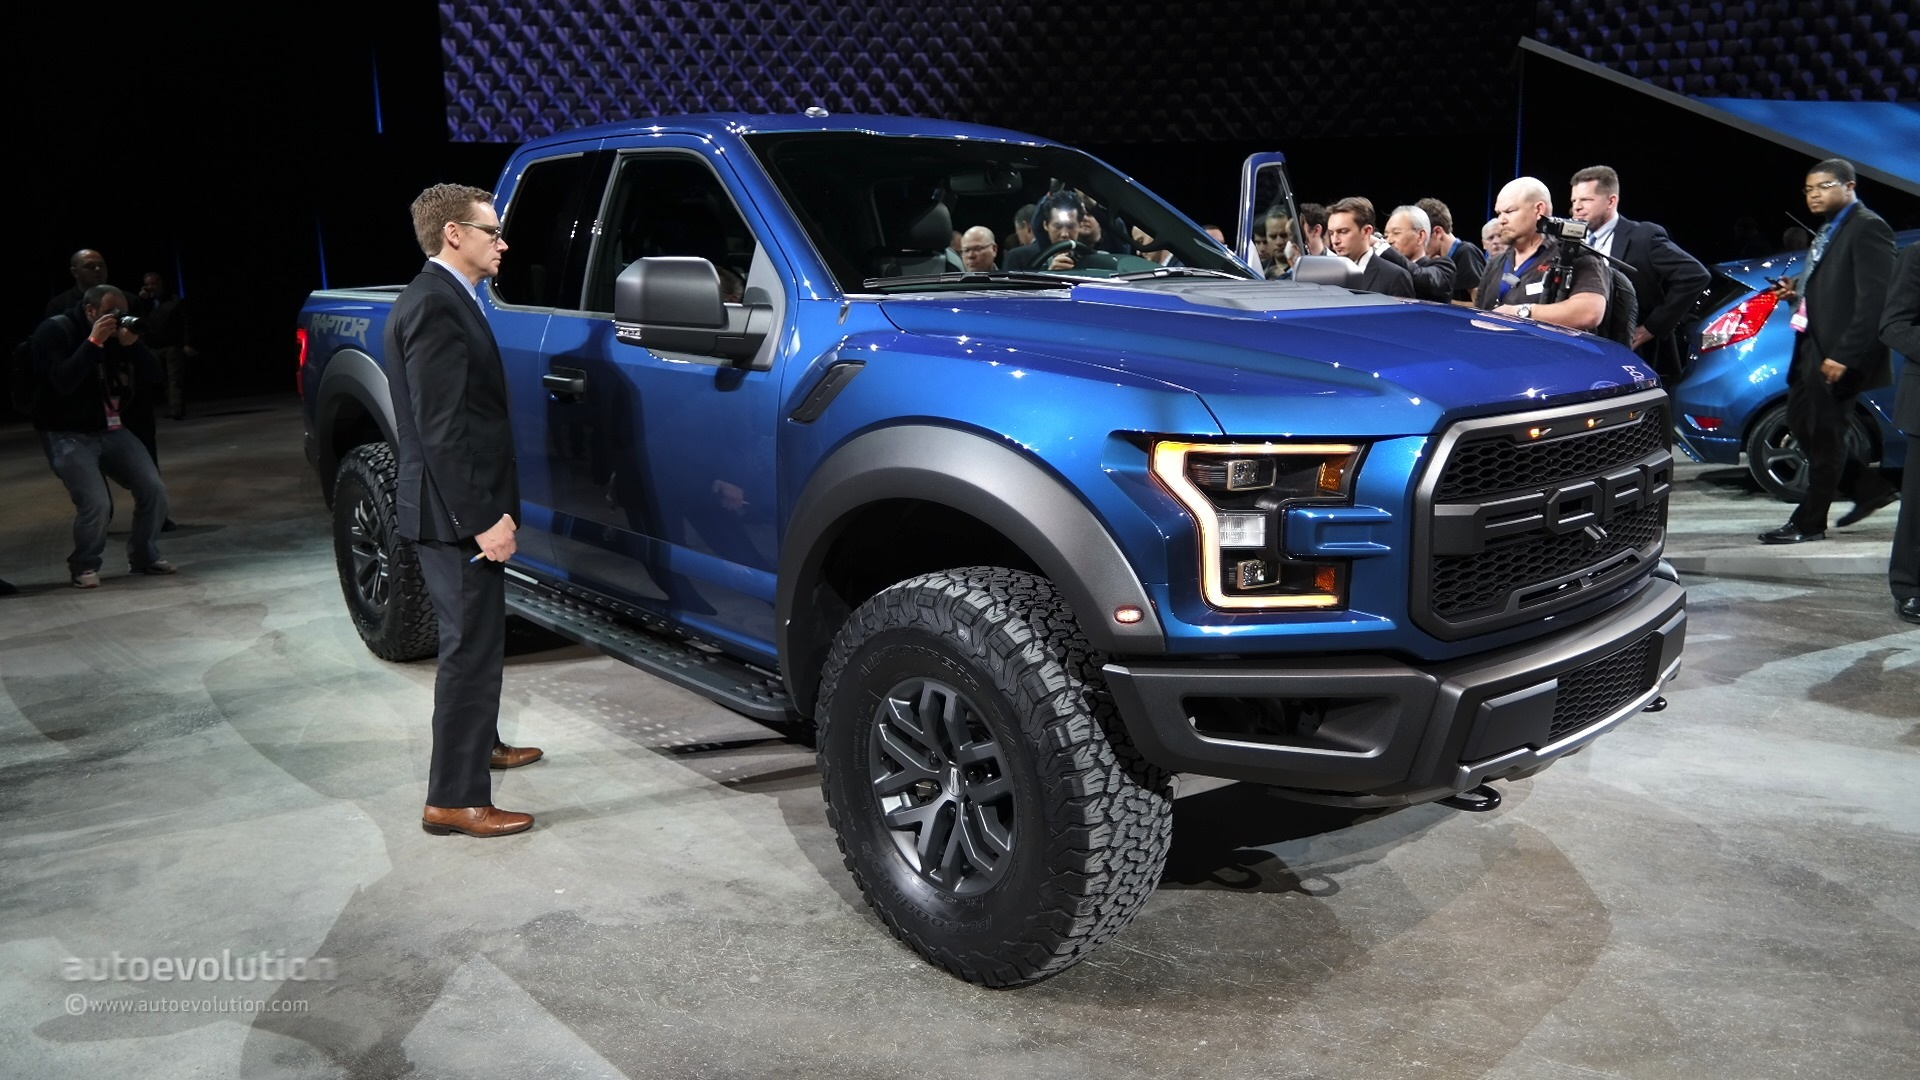 F150 Vs Sierra 2017 >> 2017 Ford F-150 Raptor Debuts at Detroit, Feels More ...